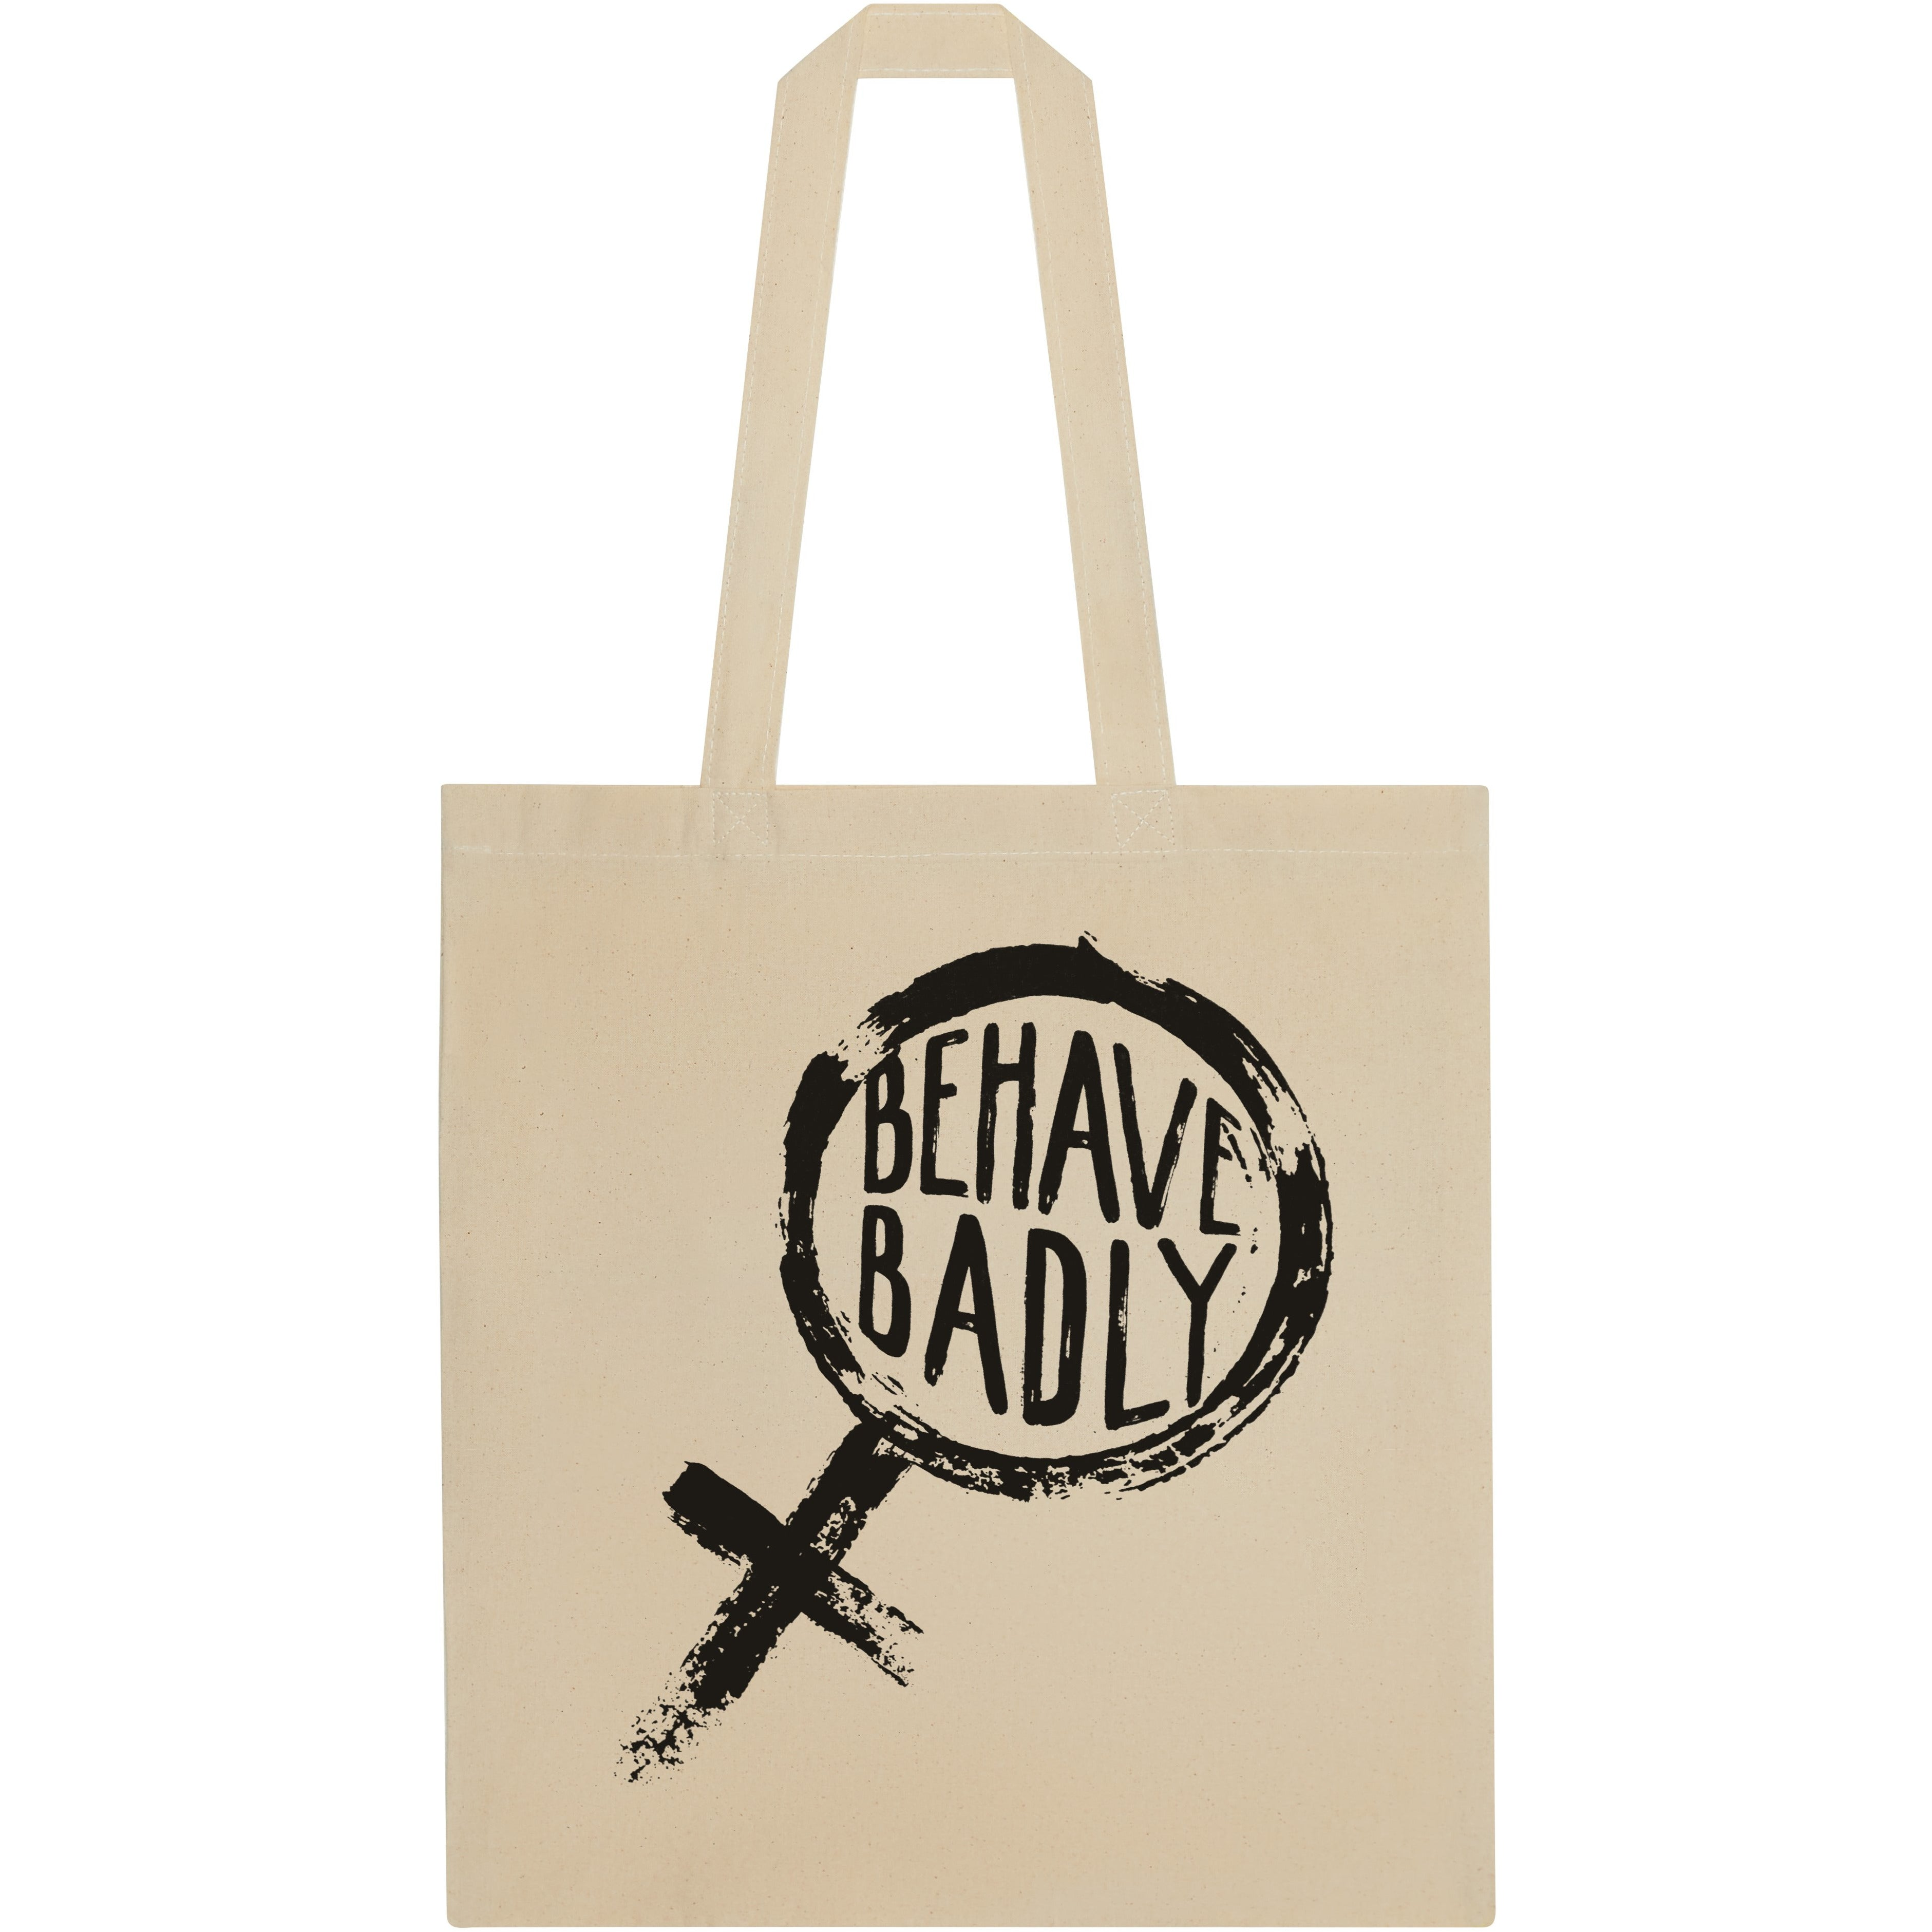 Featured image for the project: Behave Badly - Tote bag